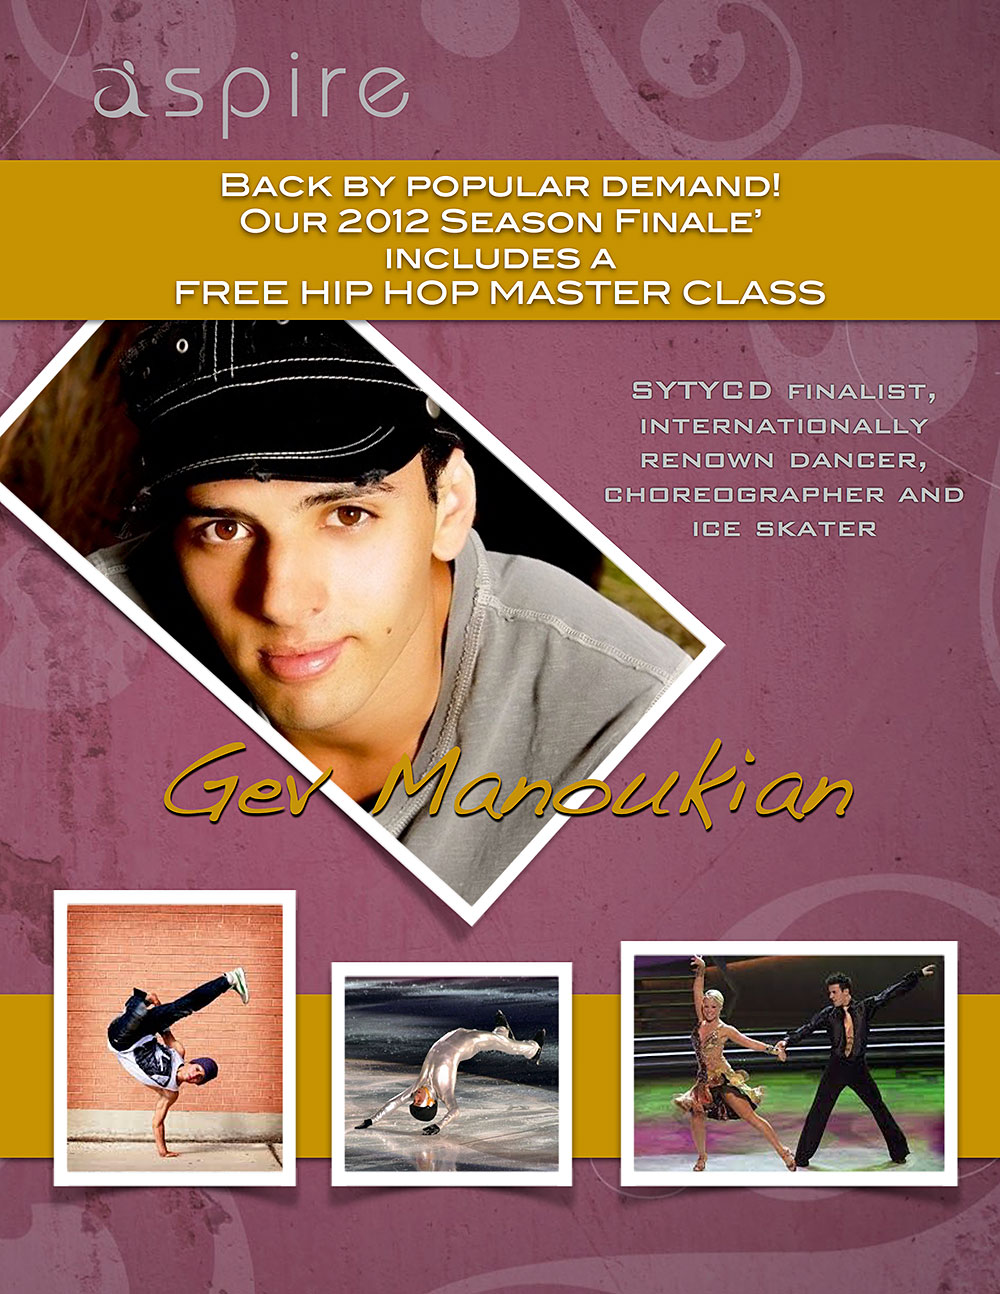 Gev Manoukian - Aspire Dance Pro Competitions Masterclass Instructor